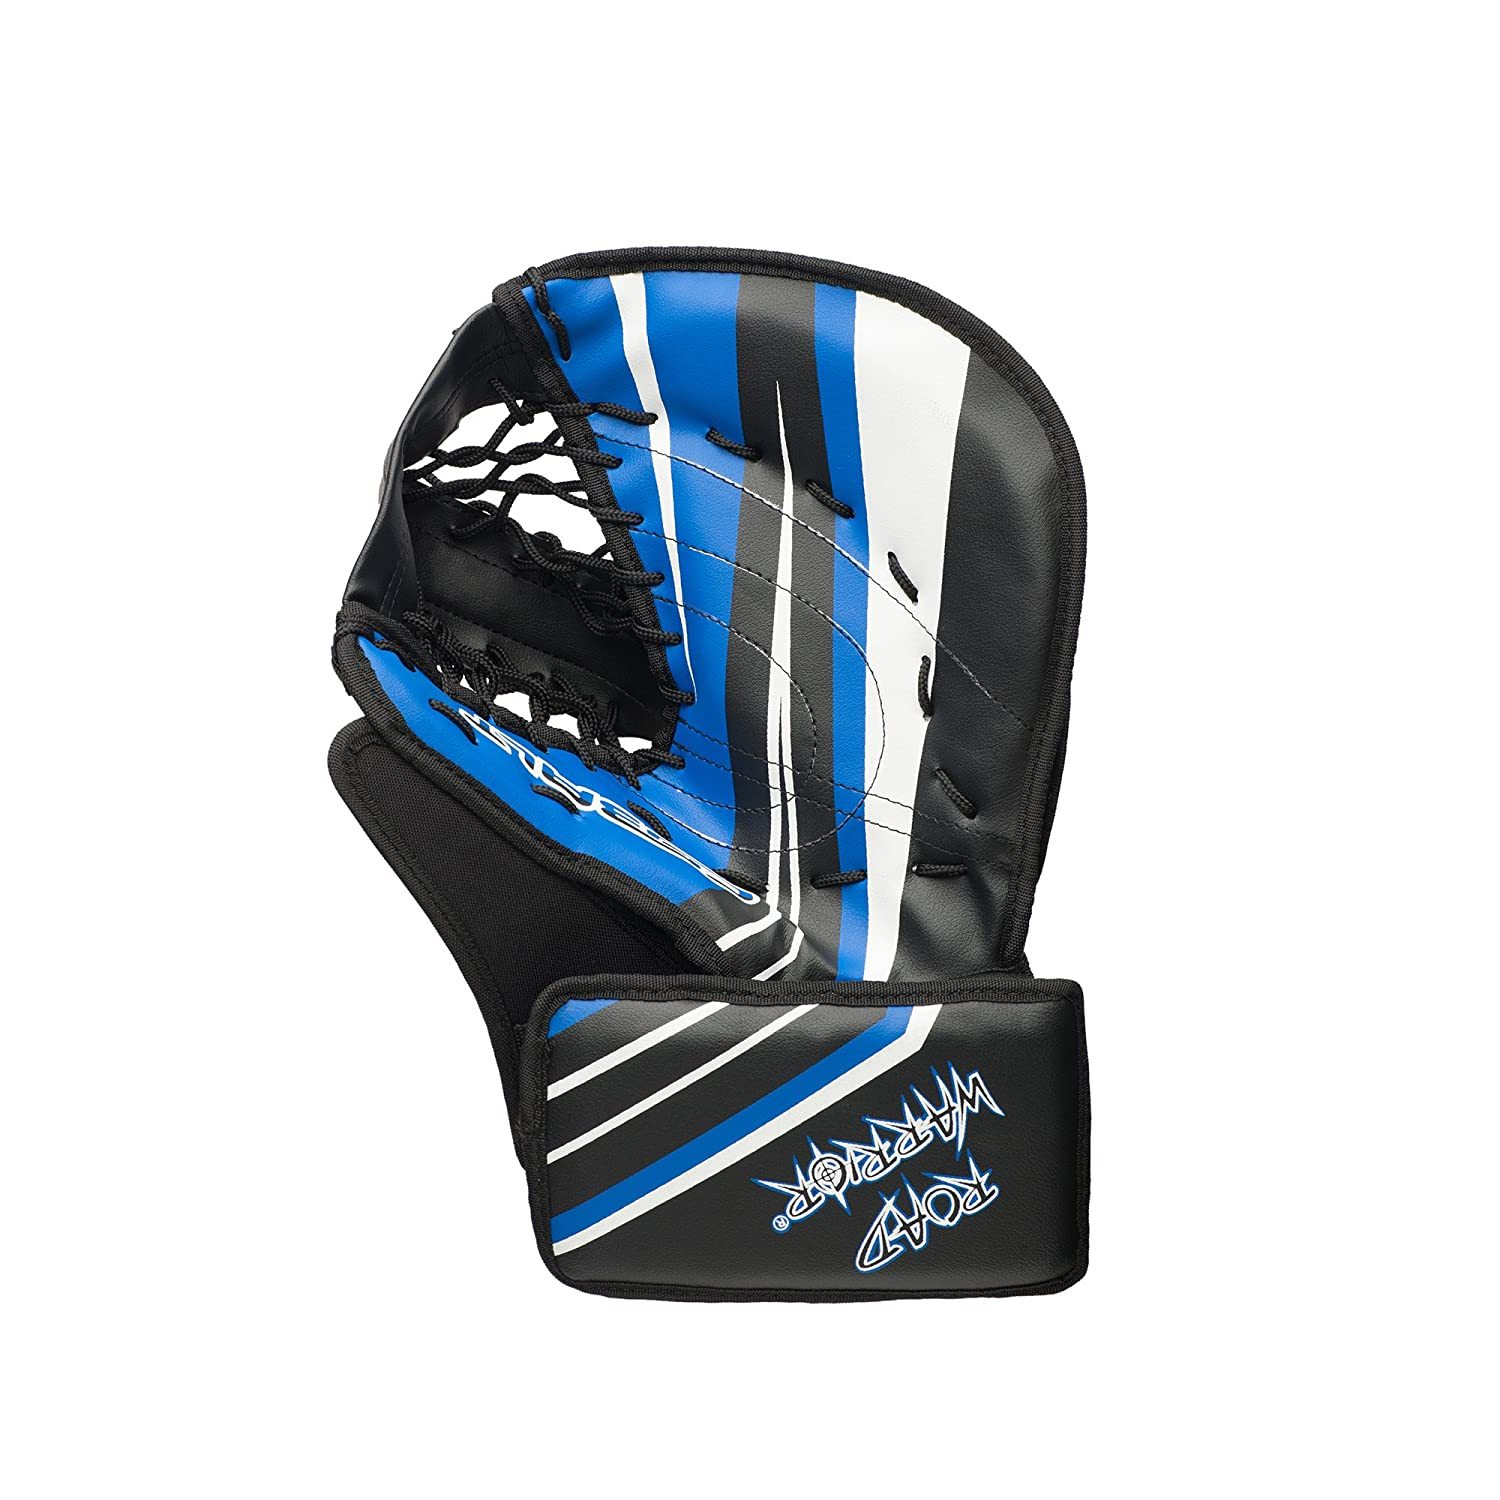 Road Warrior Cobalt Street Hockey Goalie Catch Glove, Regular NorthernAmerex DROPSHIP ROA-HOC-CBST12-RG